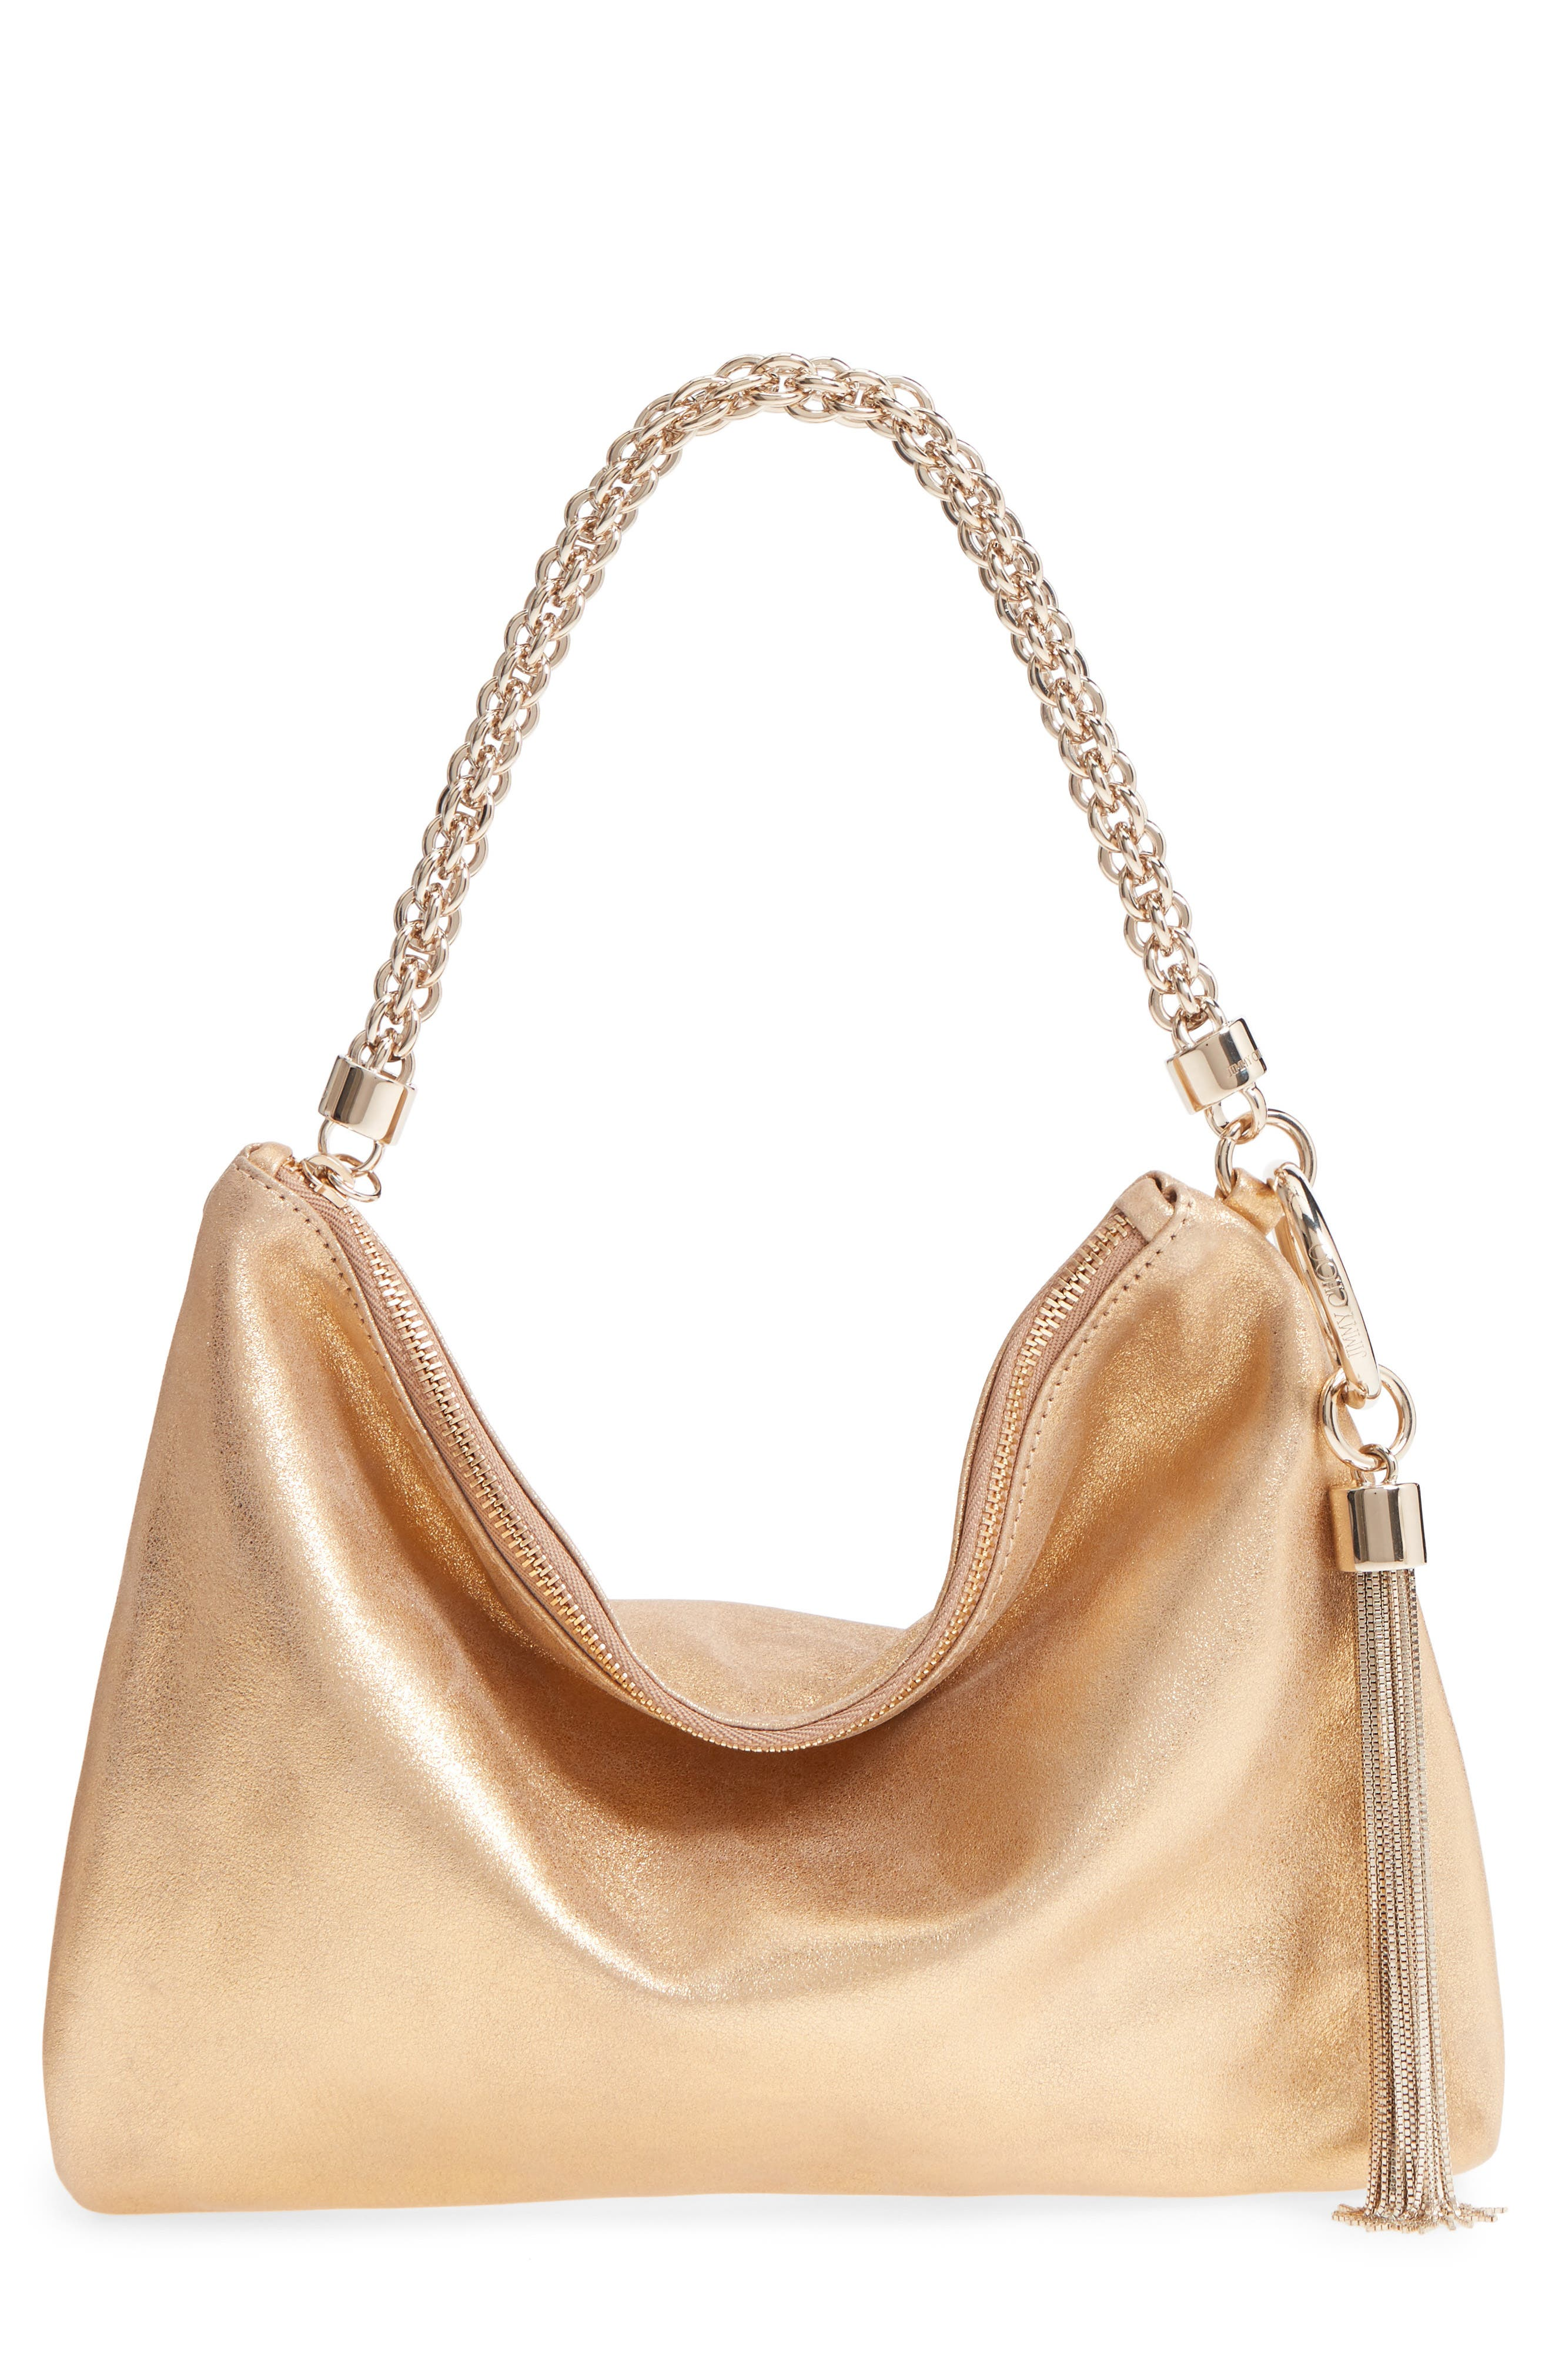 Callie Evening Metallic Leather Clutch,                             Main thumbnail 1, color,                             GOLD